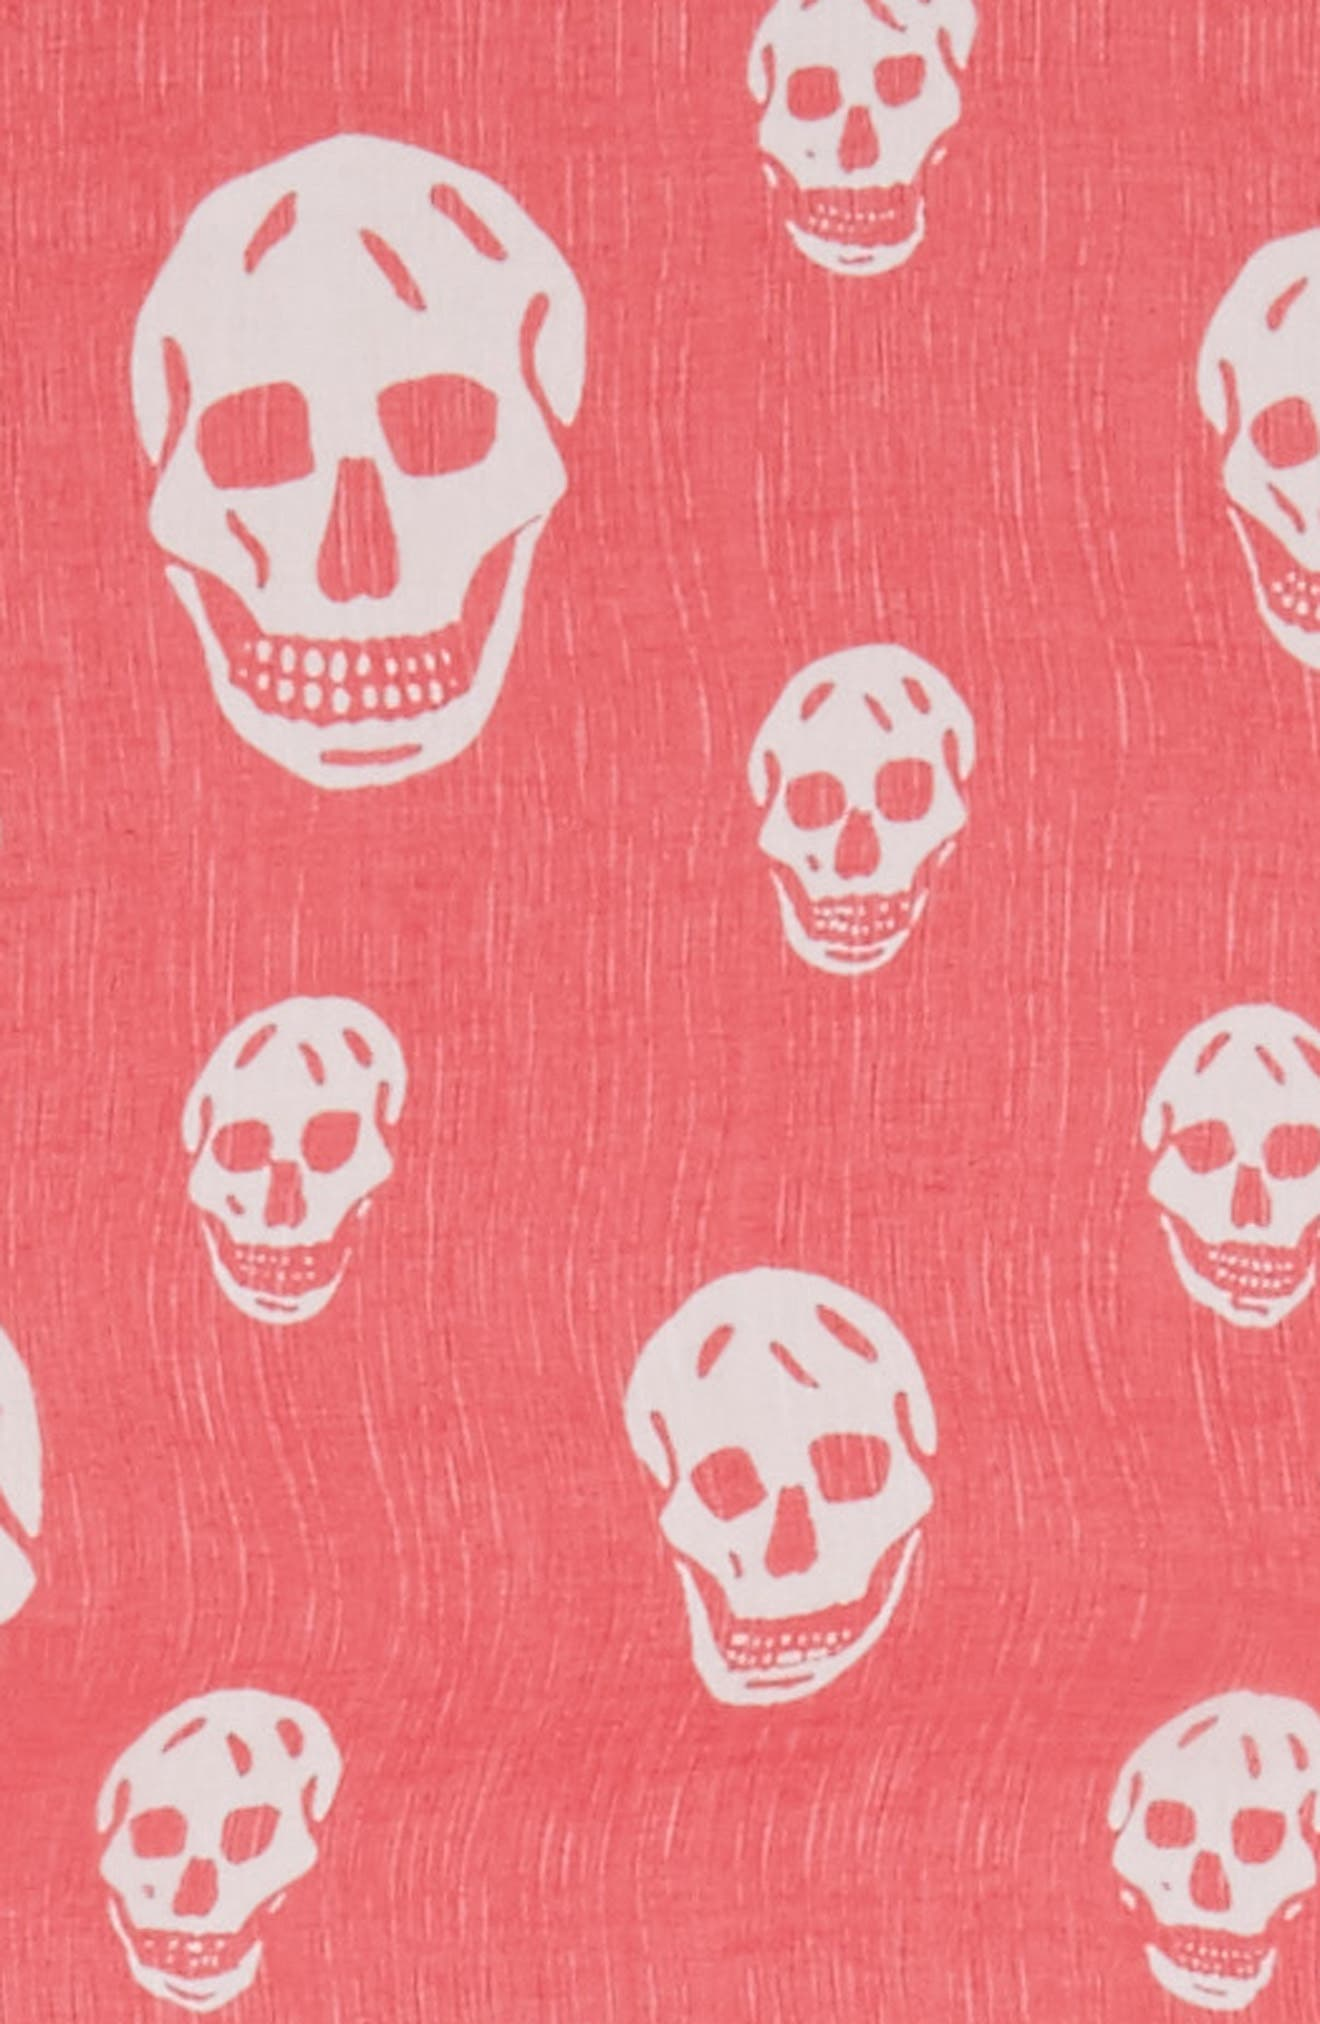 'Skull' Chiffon Scarf,                             Alternate thumbnail 3, color,                             Coral/ Beige